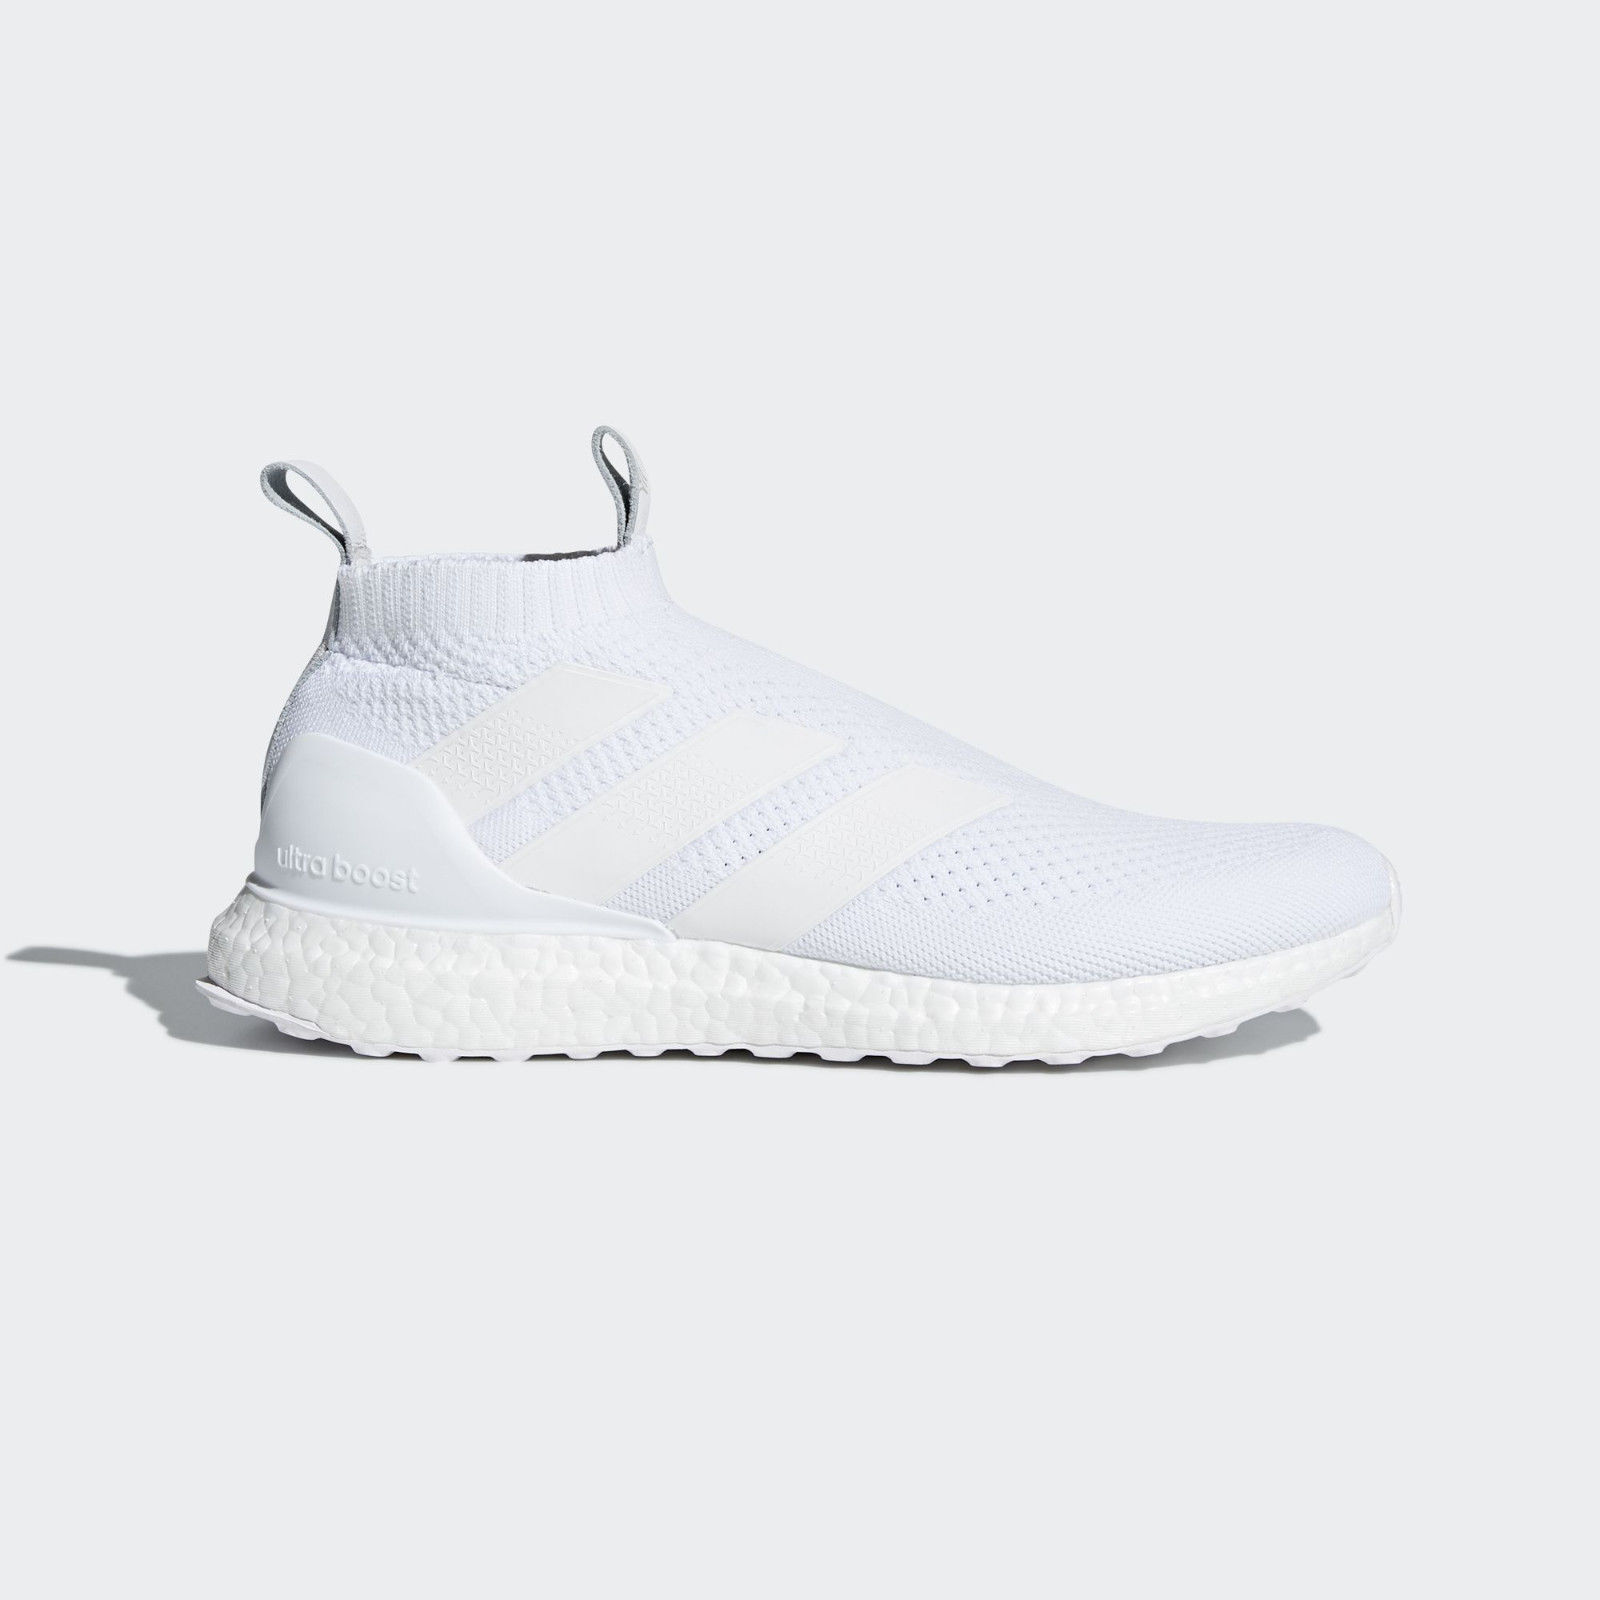 best website 9ba00 06405 adidas Ace 16+ Purecontrol Ultra boost Shoes Triple White AC7750 MULTIPLE  SIZES